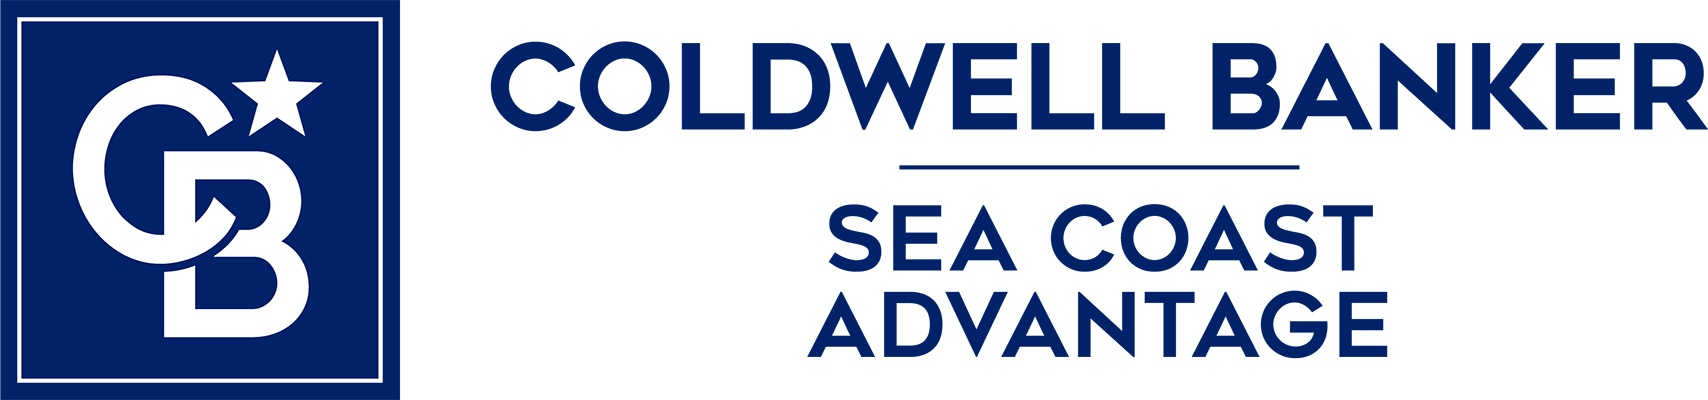 Bob Hestikind - Coldwell Banker Sea Coast Advantage Realty Logo